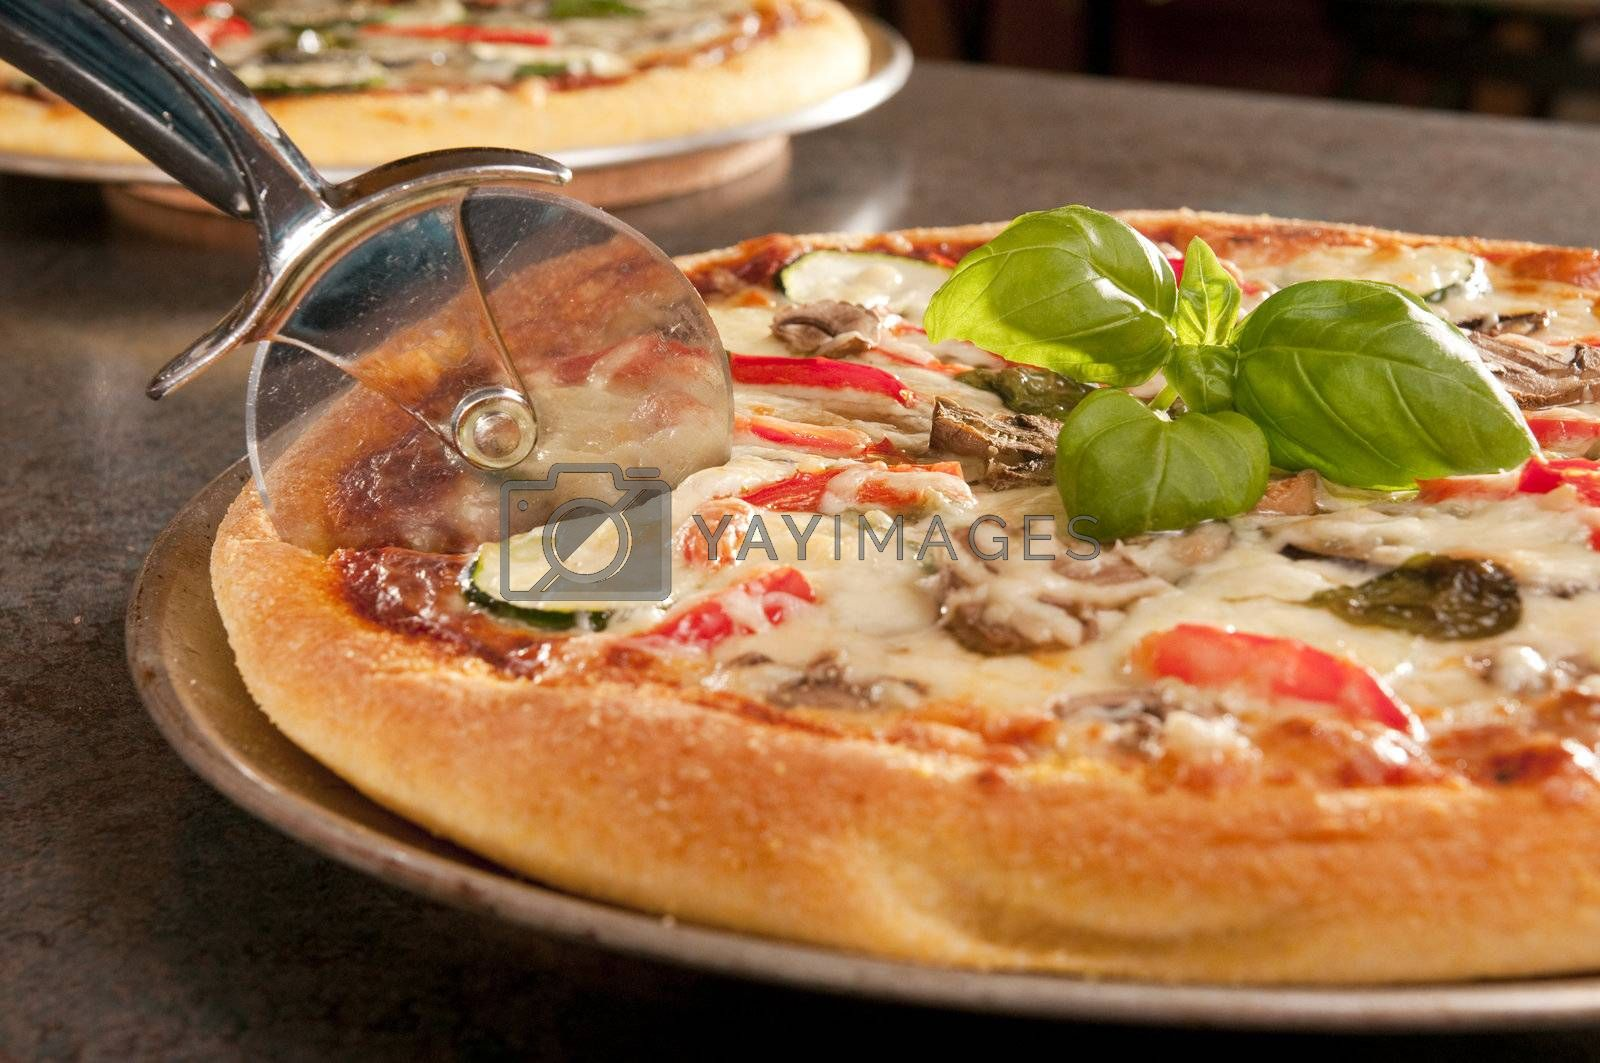 Royalty free image of Cooked pizza by vladikpod